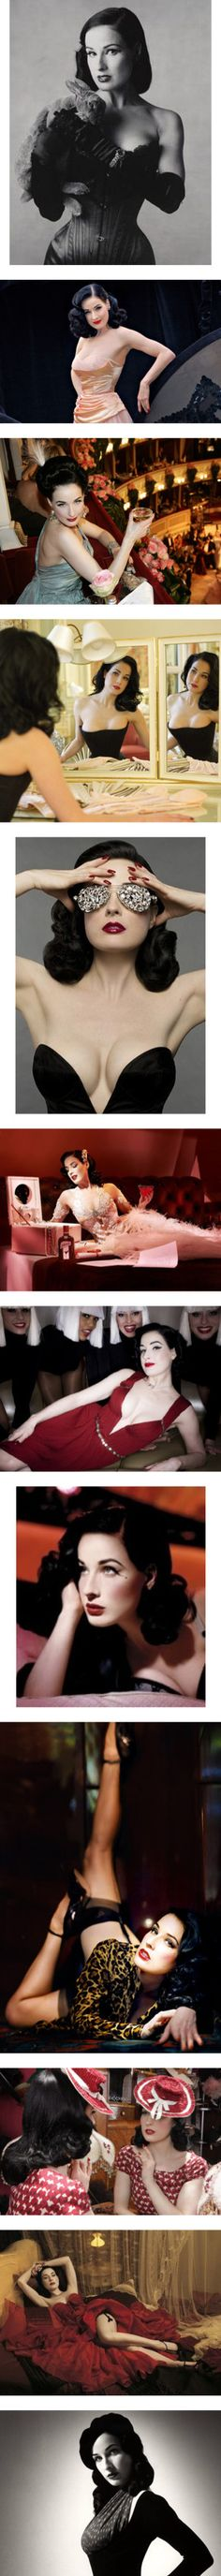 """""""Dita Von Teese"""" by straight-from-a-tea-party ❤ liked on Polyvore. I love her pin up fashion"""